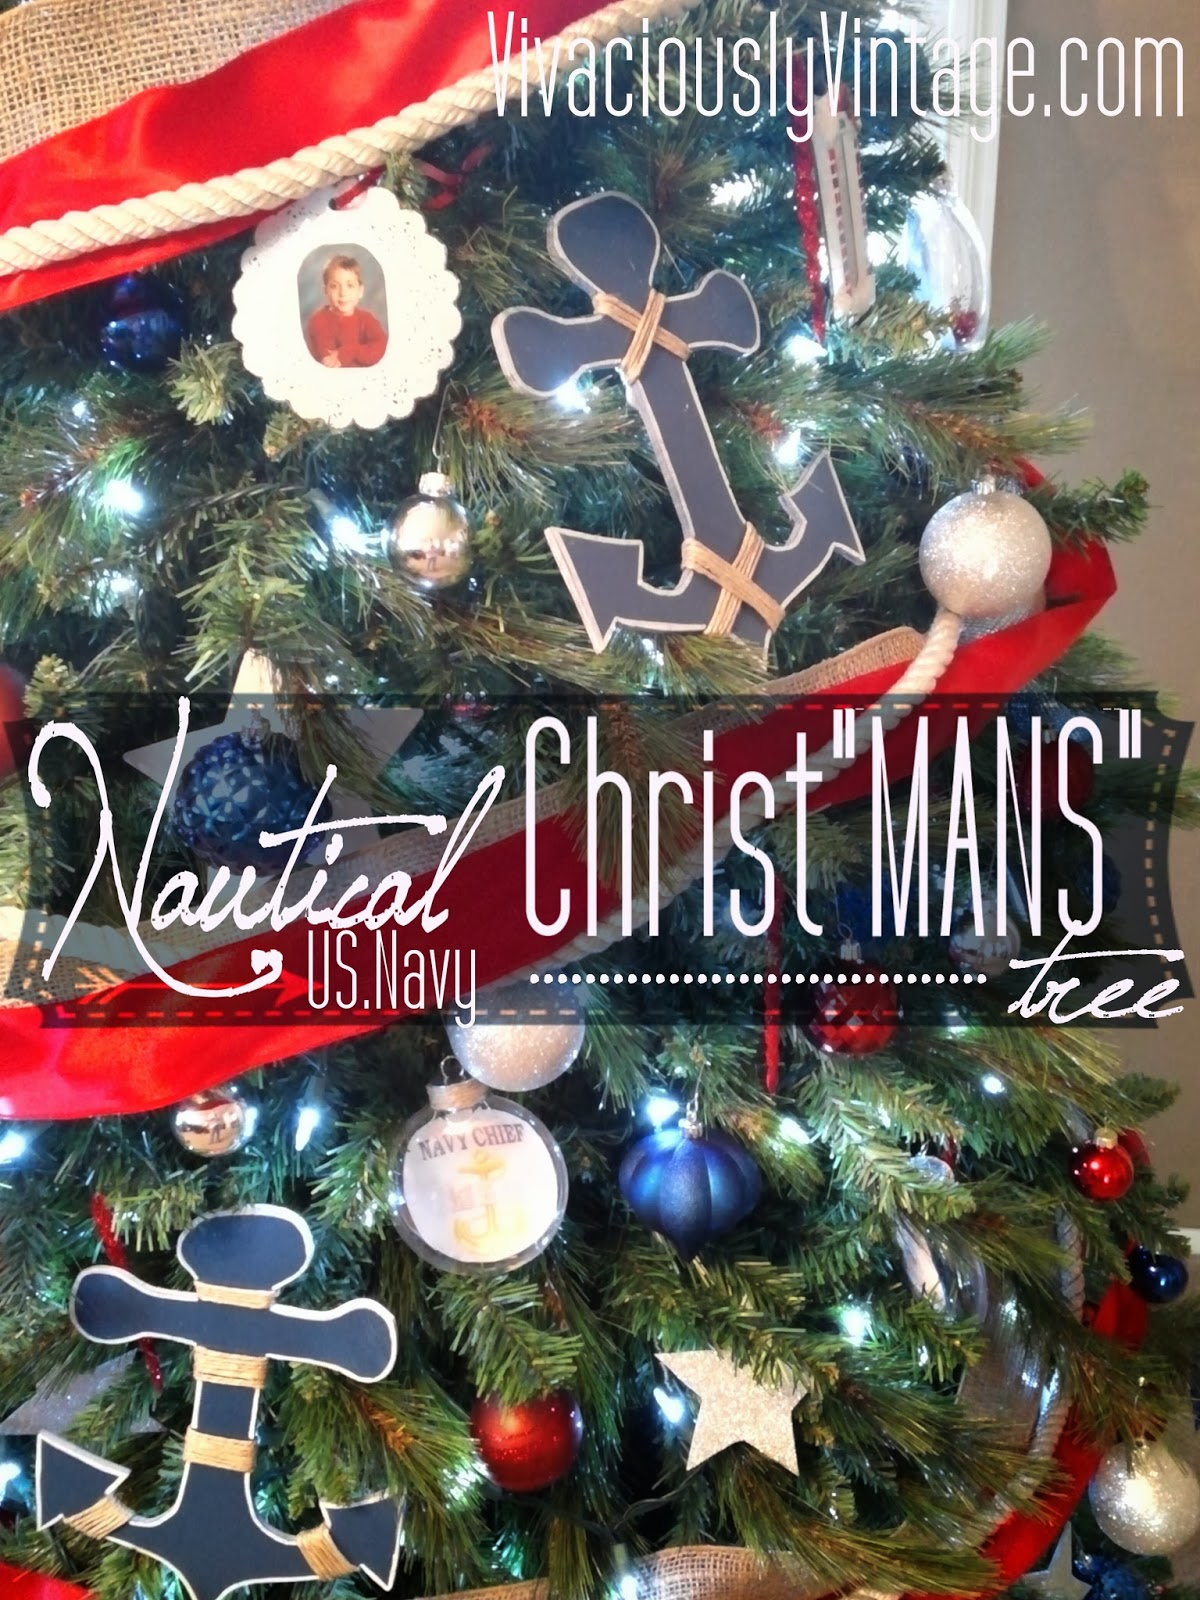 Nautical tree ornaments - One Afternoon I Decided That I Wanted A Second Christmas Tree Then That Idea Evolved Into Having The Second Tree S Theme Be Something That Jeremy Would